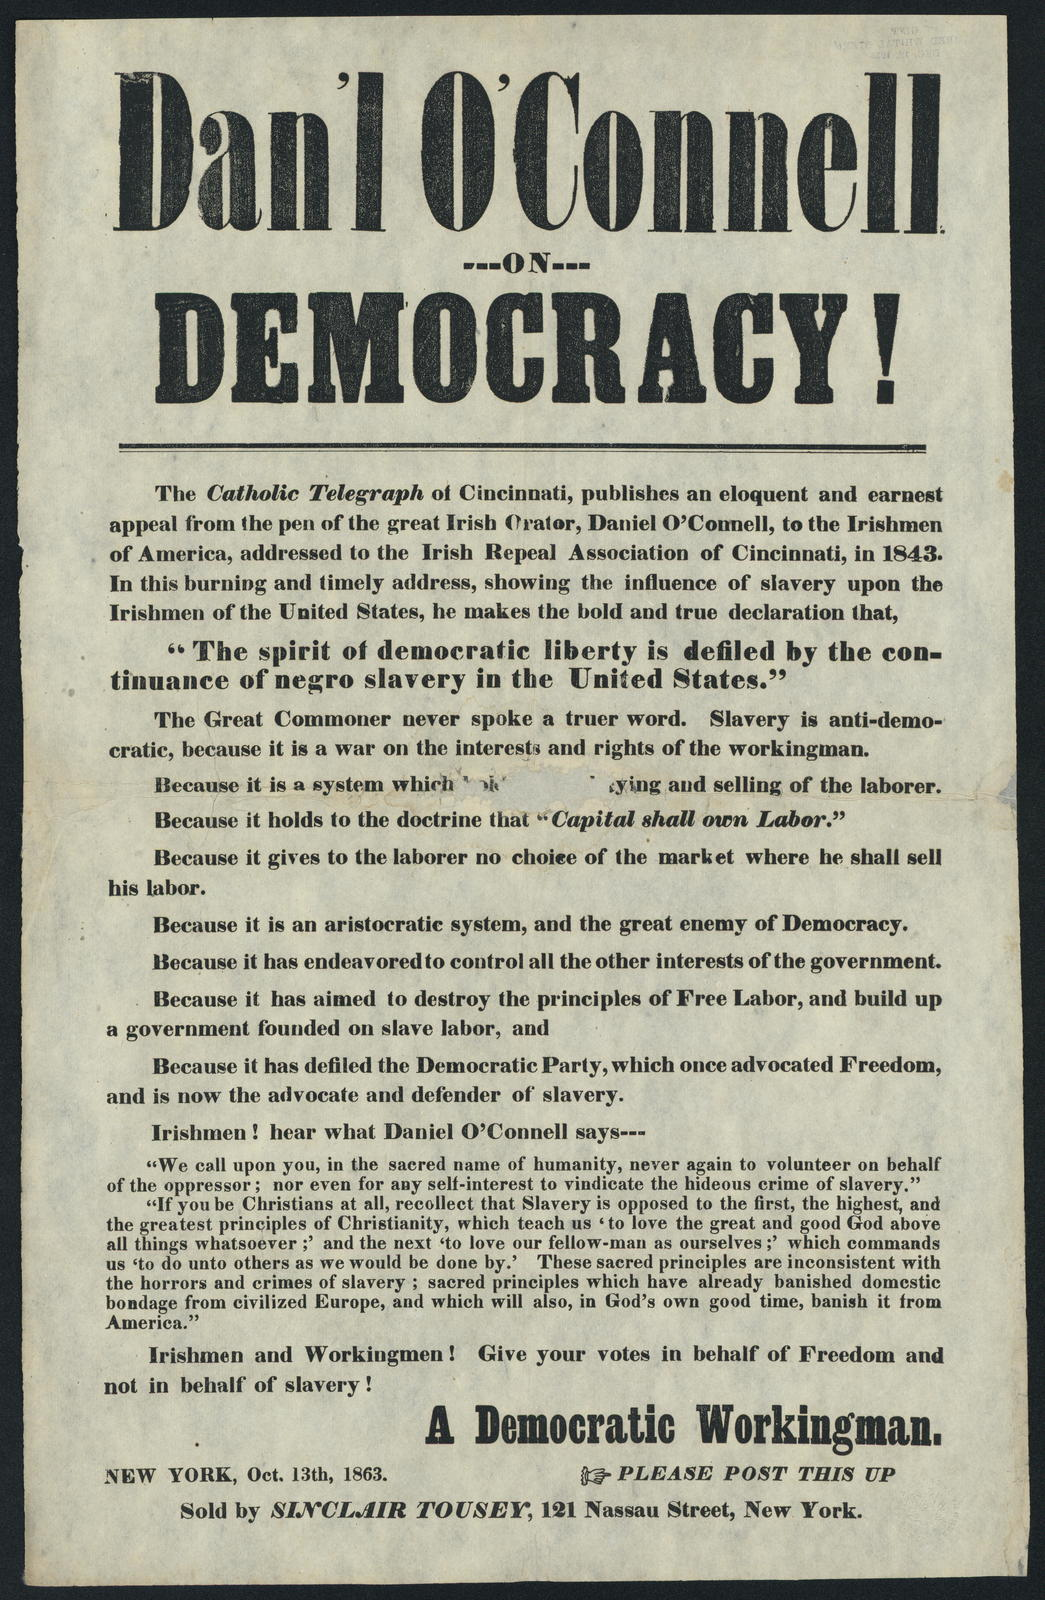 Dan'l O'Connell on democracy! The Catholic Telegraph of Cincinnati, publishes an eloquent and earnest appeal.